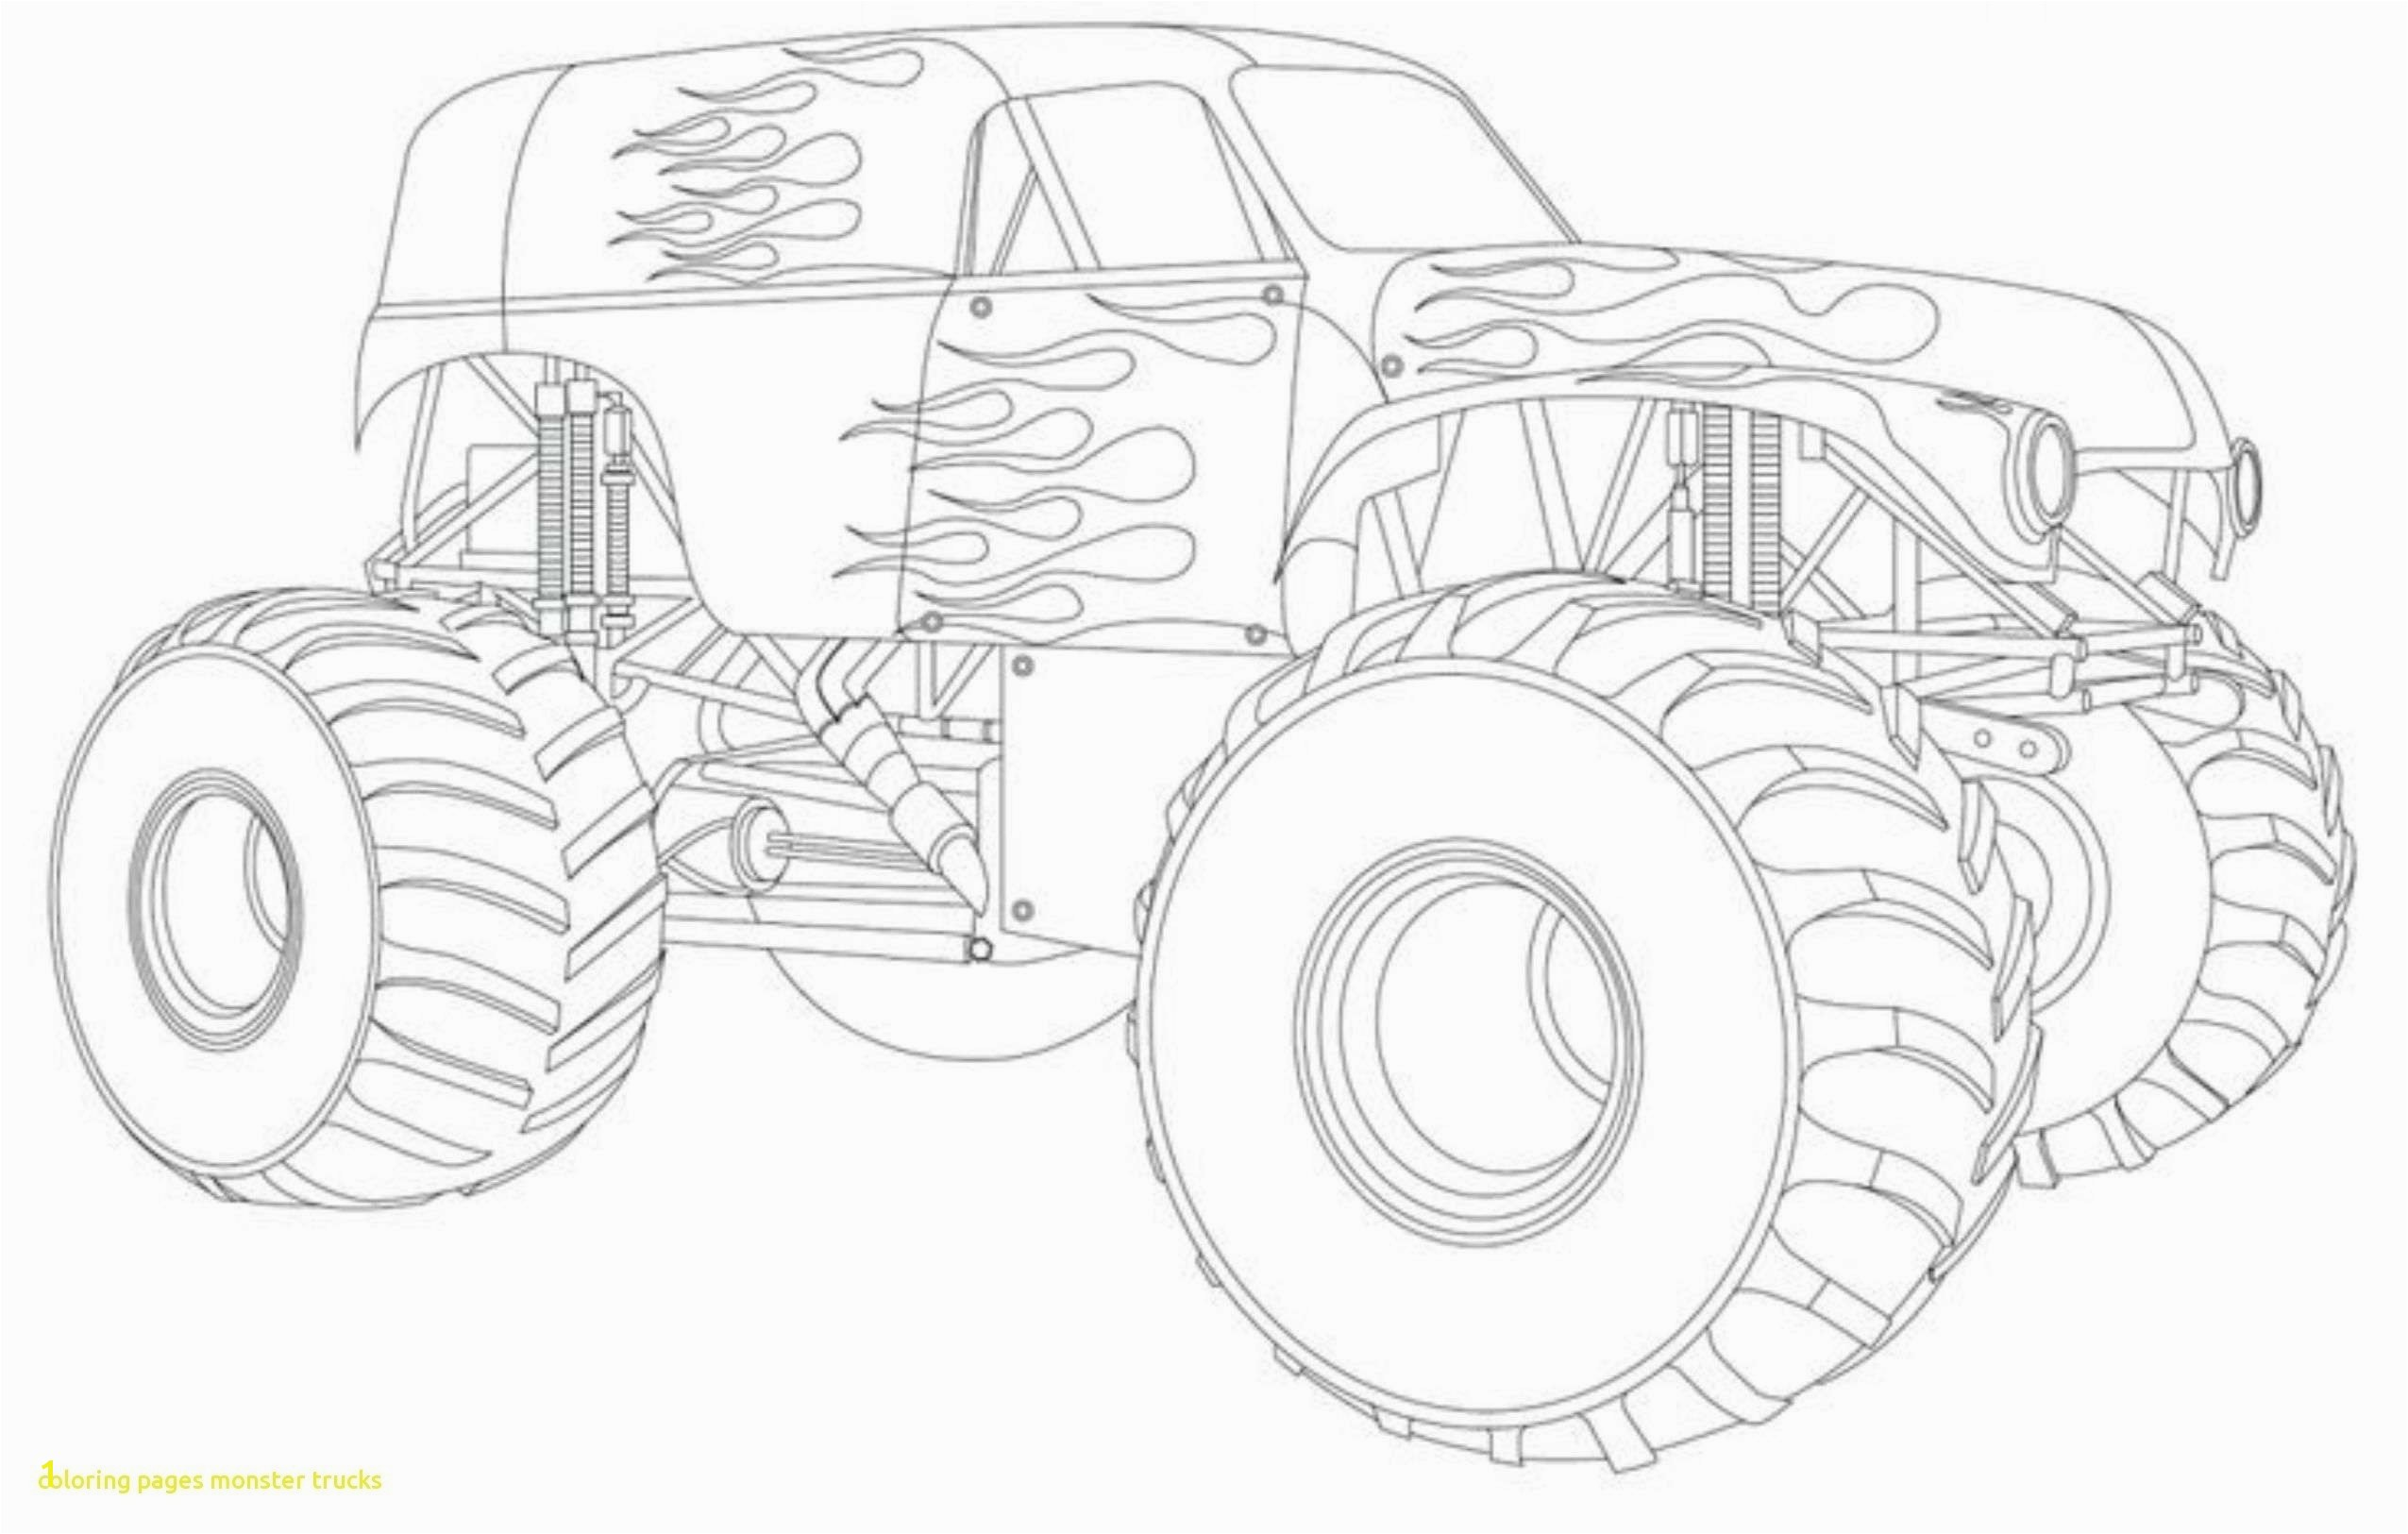 Od Sand Coloring Page Monster Truck Printable Coloring Pages New Mississippi Coloring Pages Coloring Pages Coloring Pages